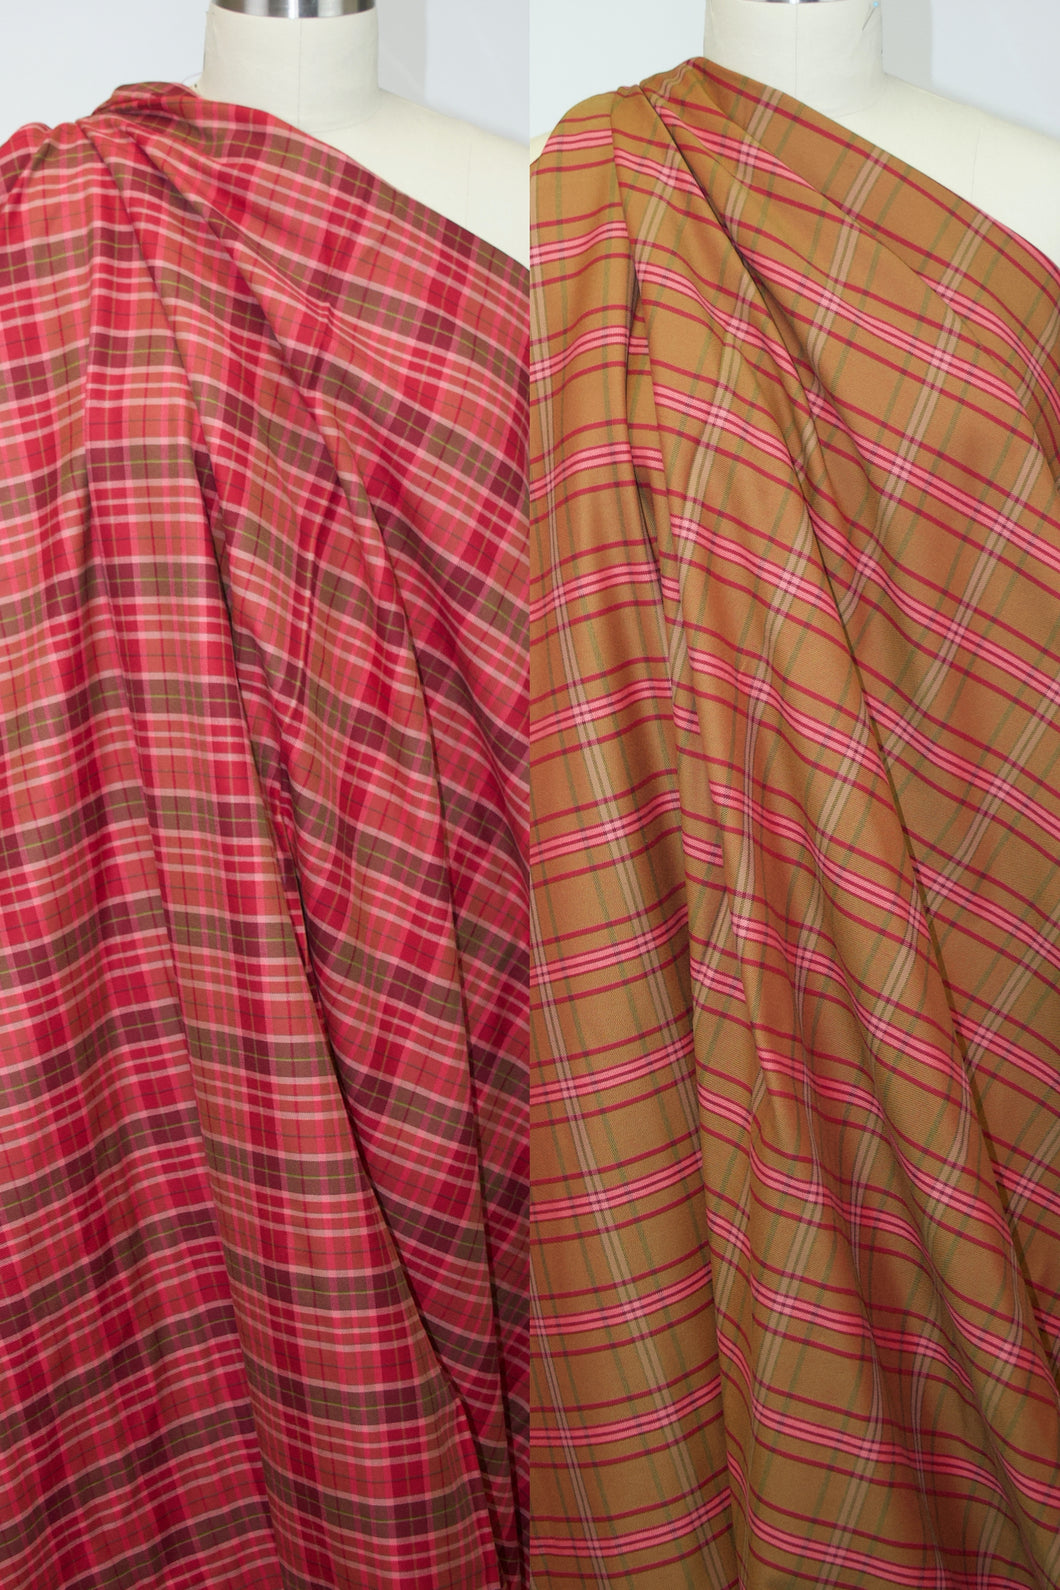 Cotton Shirting Double Cloth - Red/Gold/Pinks